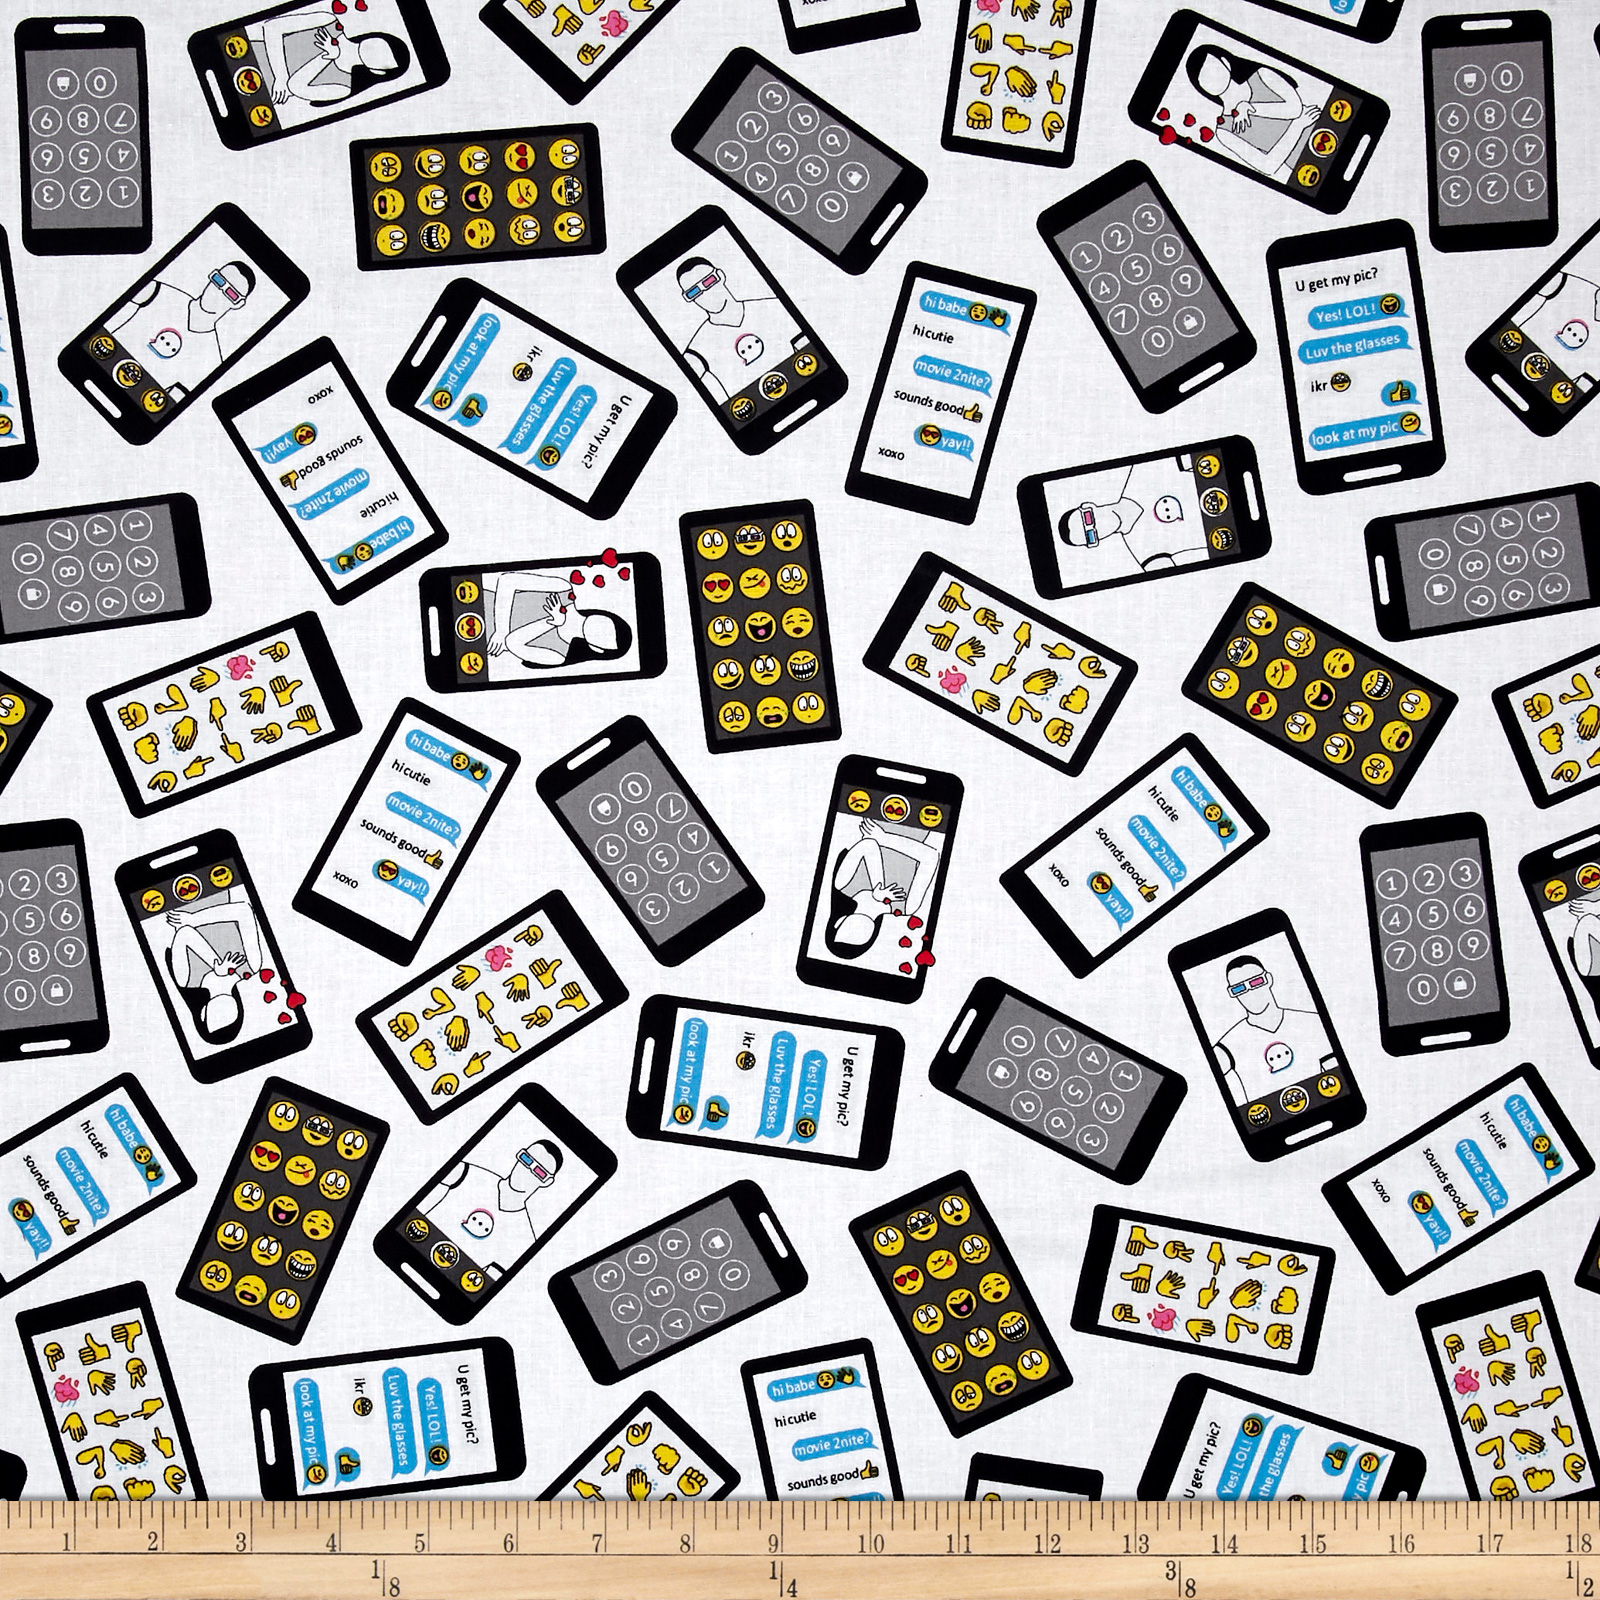 Designed by MY KT for Windham Fabrics this cotton print features a layout of iphones and tablets with emojis text messages male and female figures and the number pad which is perfect for quilting apparel and home decor accents. Colors include black white grey yellow red pink and blue.